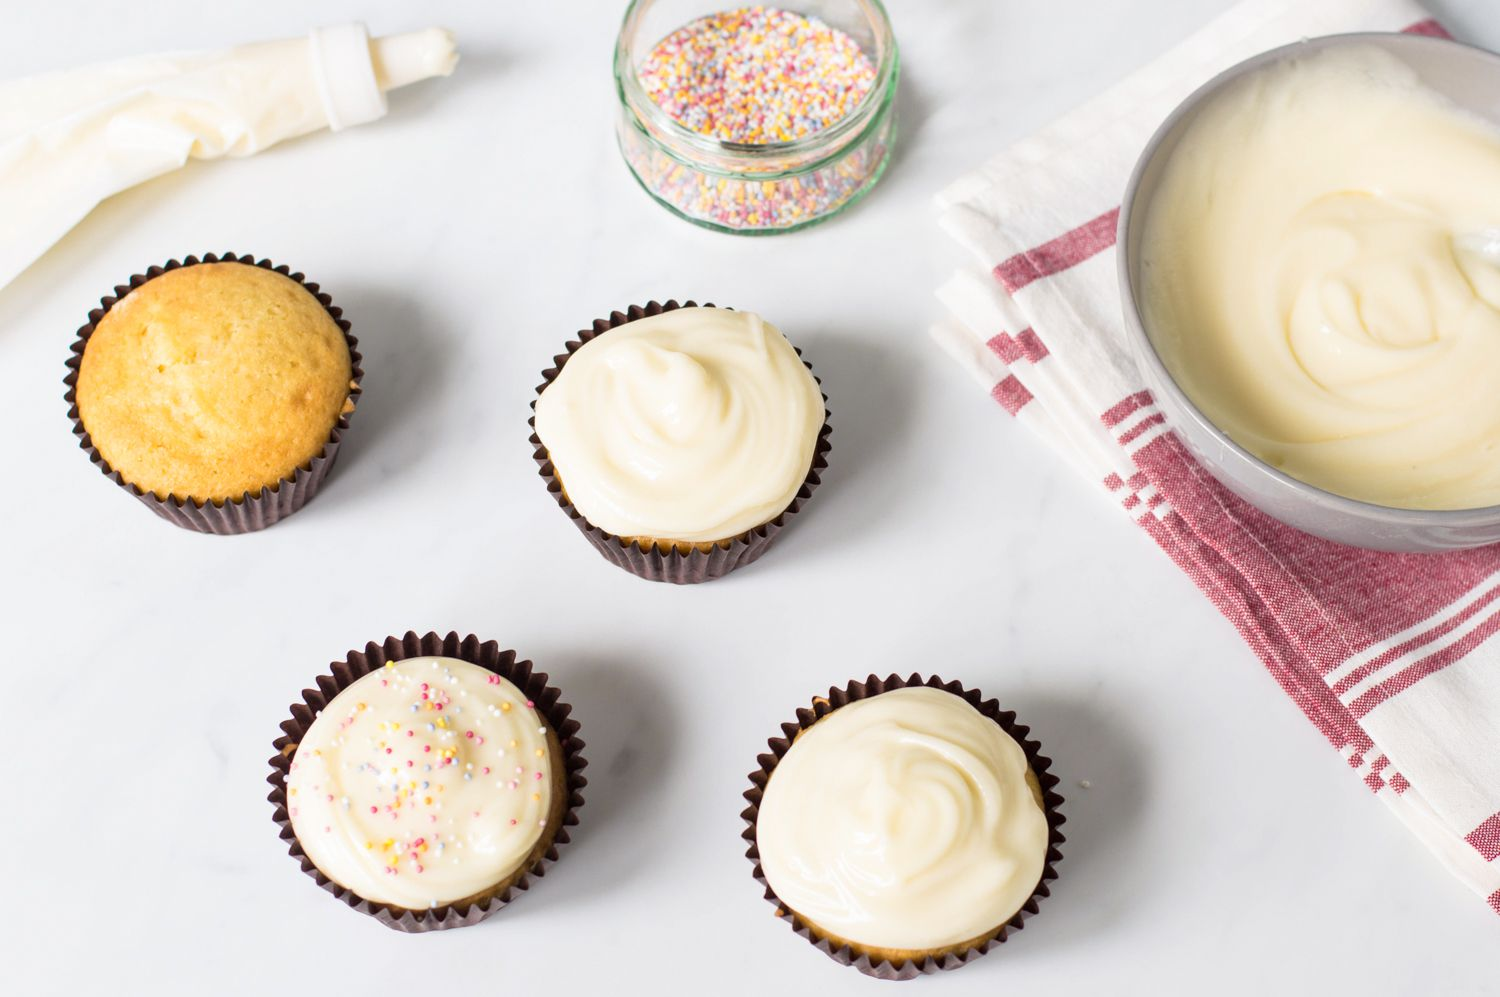 Homemade cream cheese frosting on cupcakes